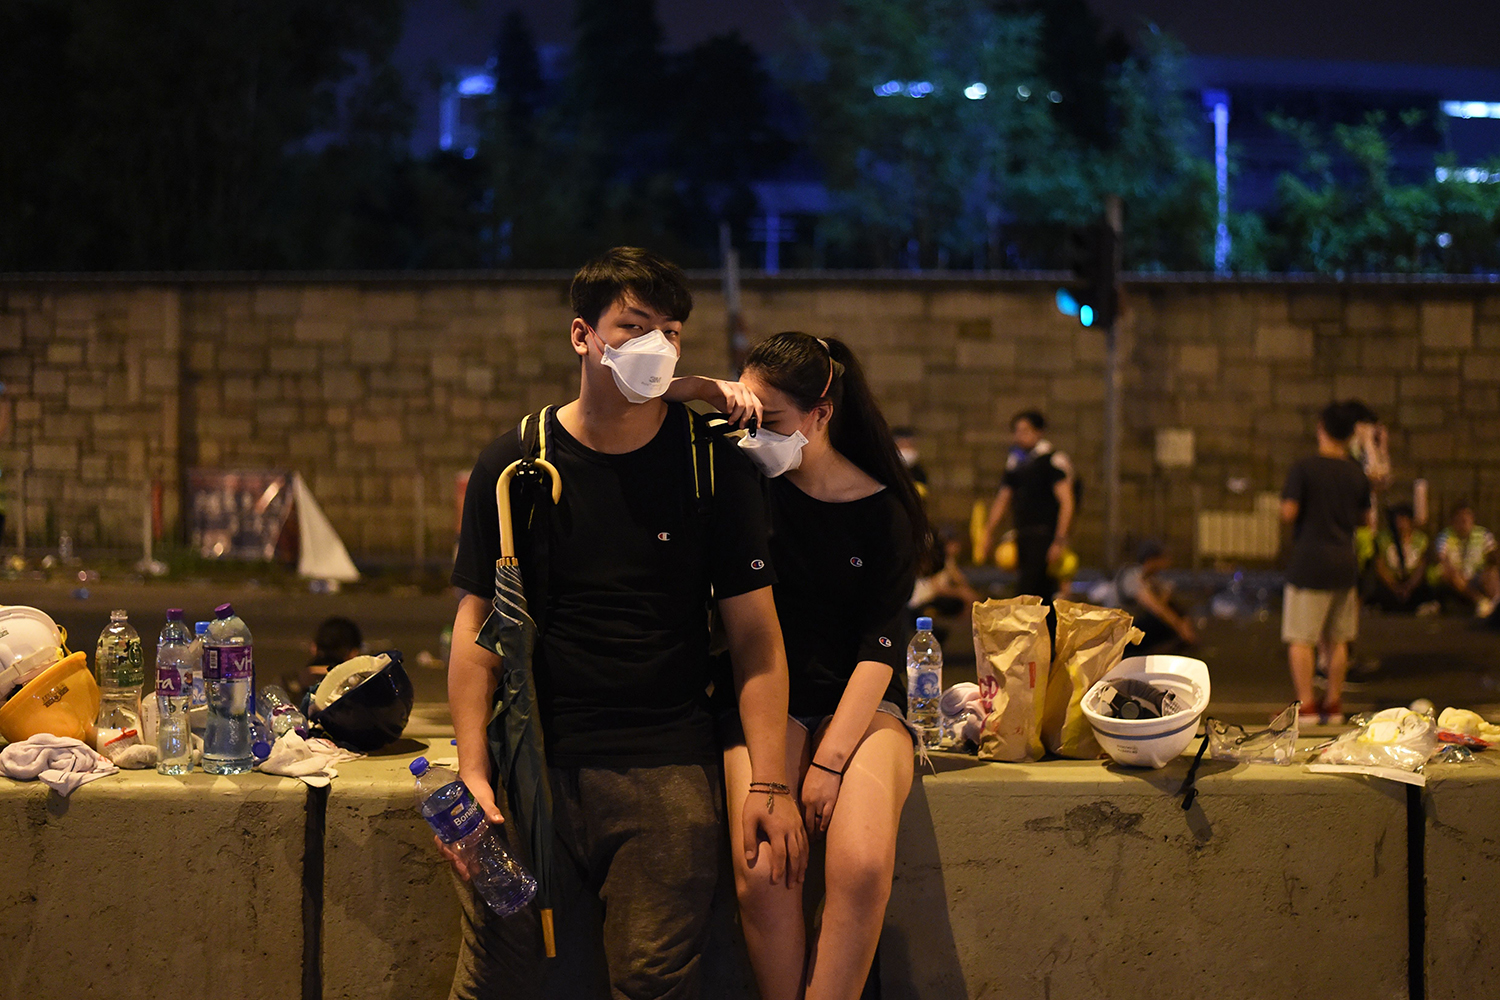 HONG KONG | Demonstrators rest after a protest in Hong Kong on June 12. HECTOR RETAMAL/AFP/Getty Images